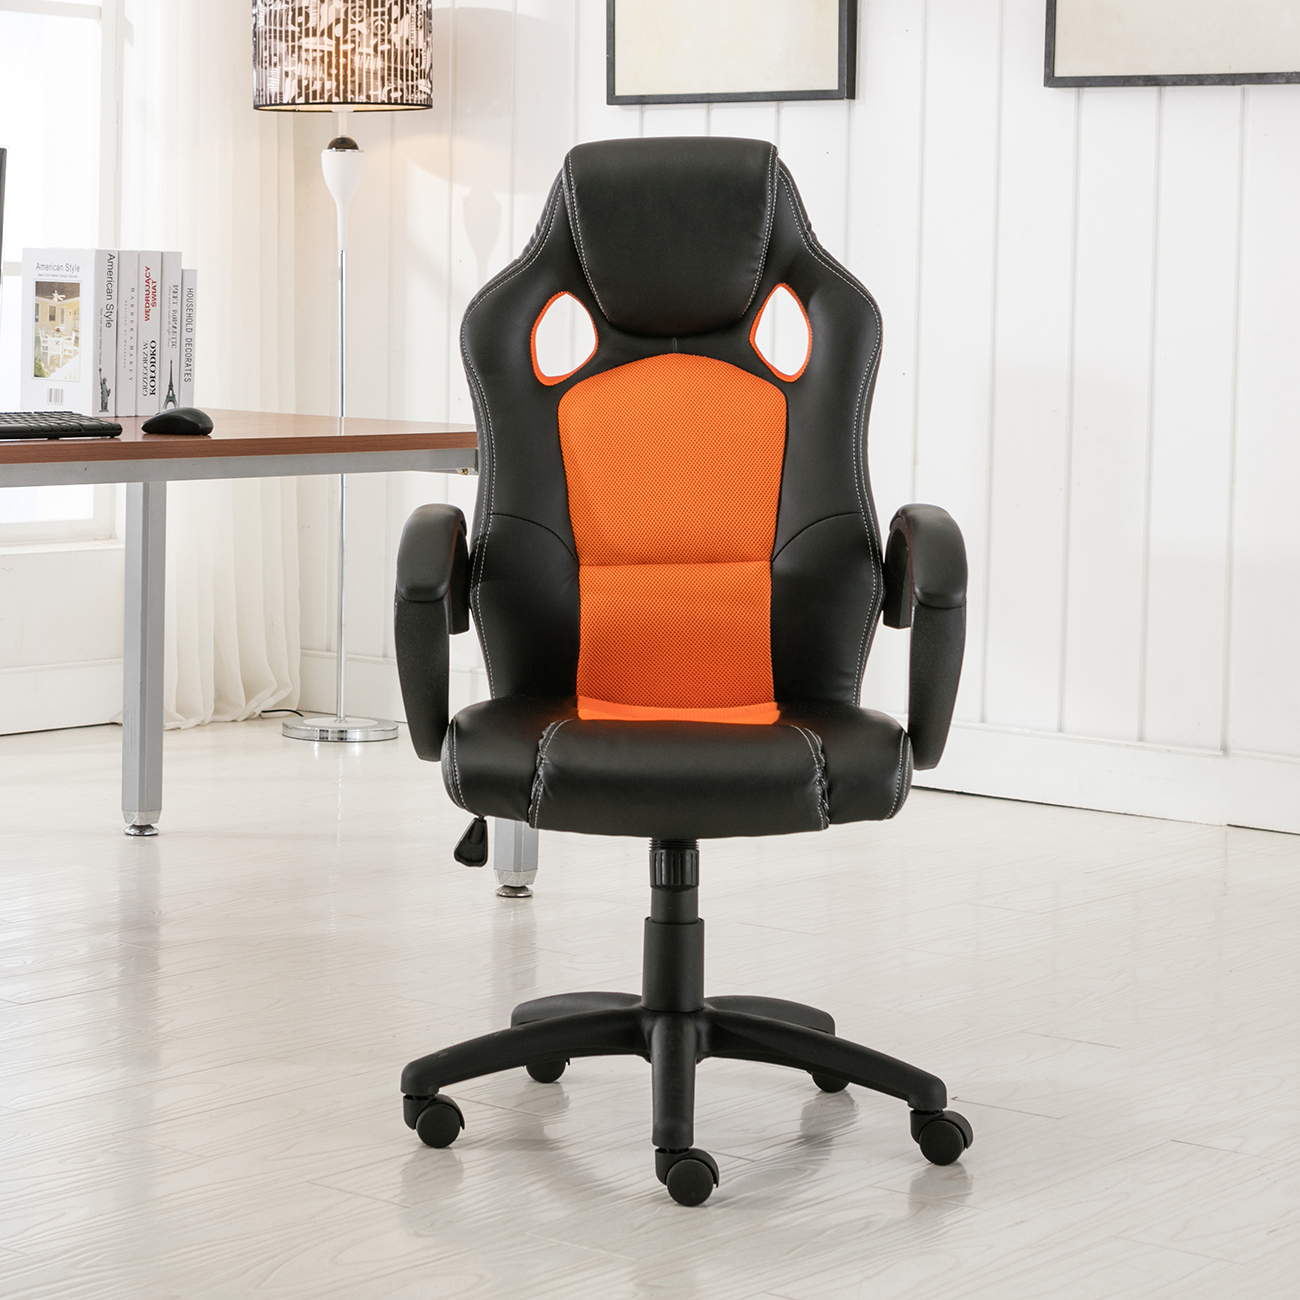 Computer Chairs For Gaming High Back Race Car Style Bucket Seat Office Desk Chair